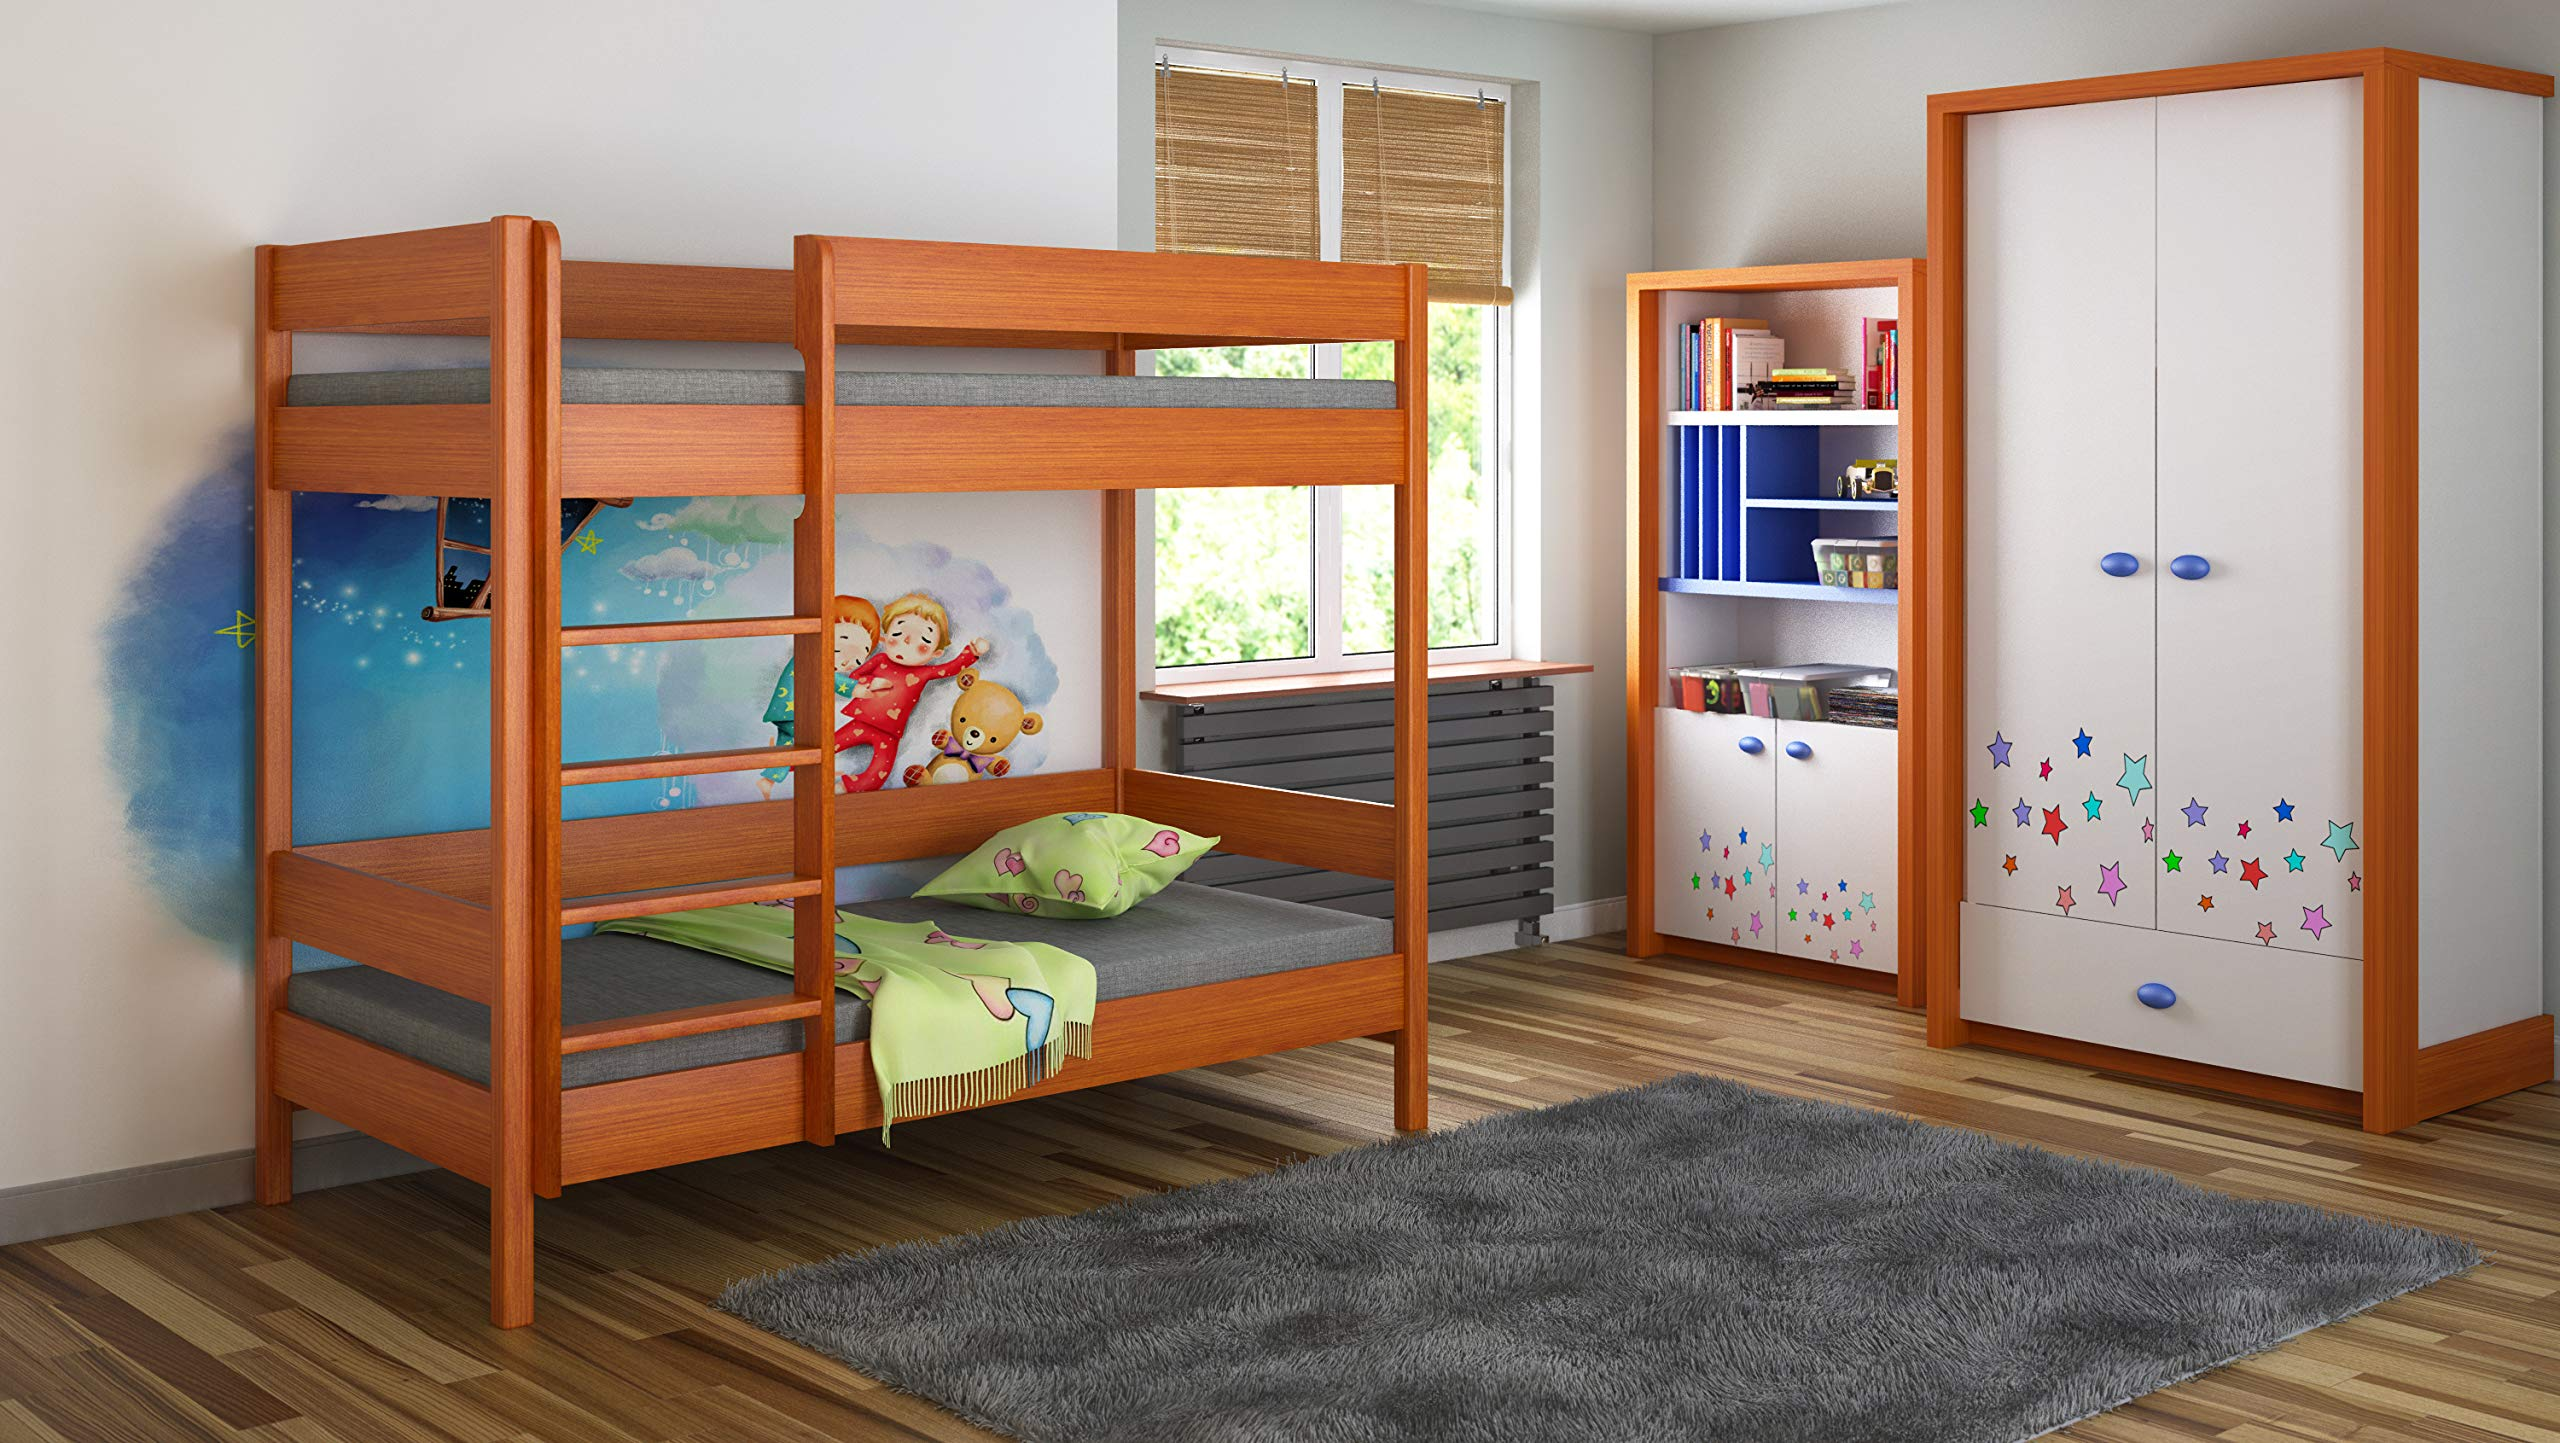 Children's Beds Home Bunk Beds - Kids Children Juniors Single with 2 Foam - Coconut Mattress but No Drawers Included (200x90, Alder) Children's Beds Home Bed with barriers internal dimensions: 140x70x160, 160x80x160, 180x80x160, 180x90x160, 200x90x160. External dimensions: 147x77x160, 167x87x160, 187x87x160, 187x97x160, 207x97x160 Bunk Bed with access from the - Front (D-1), Universal bed entrance - left or right side. 2